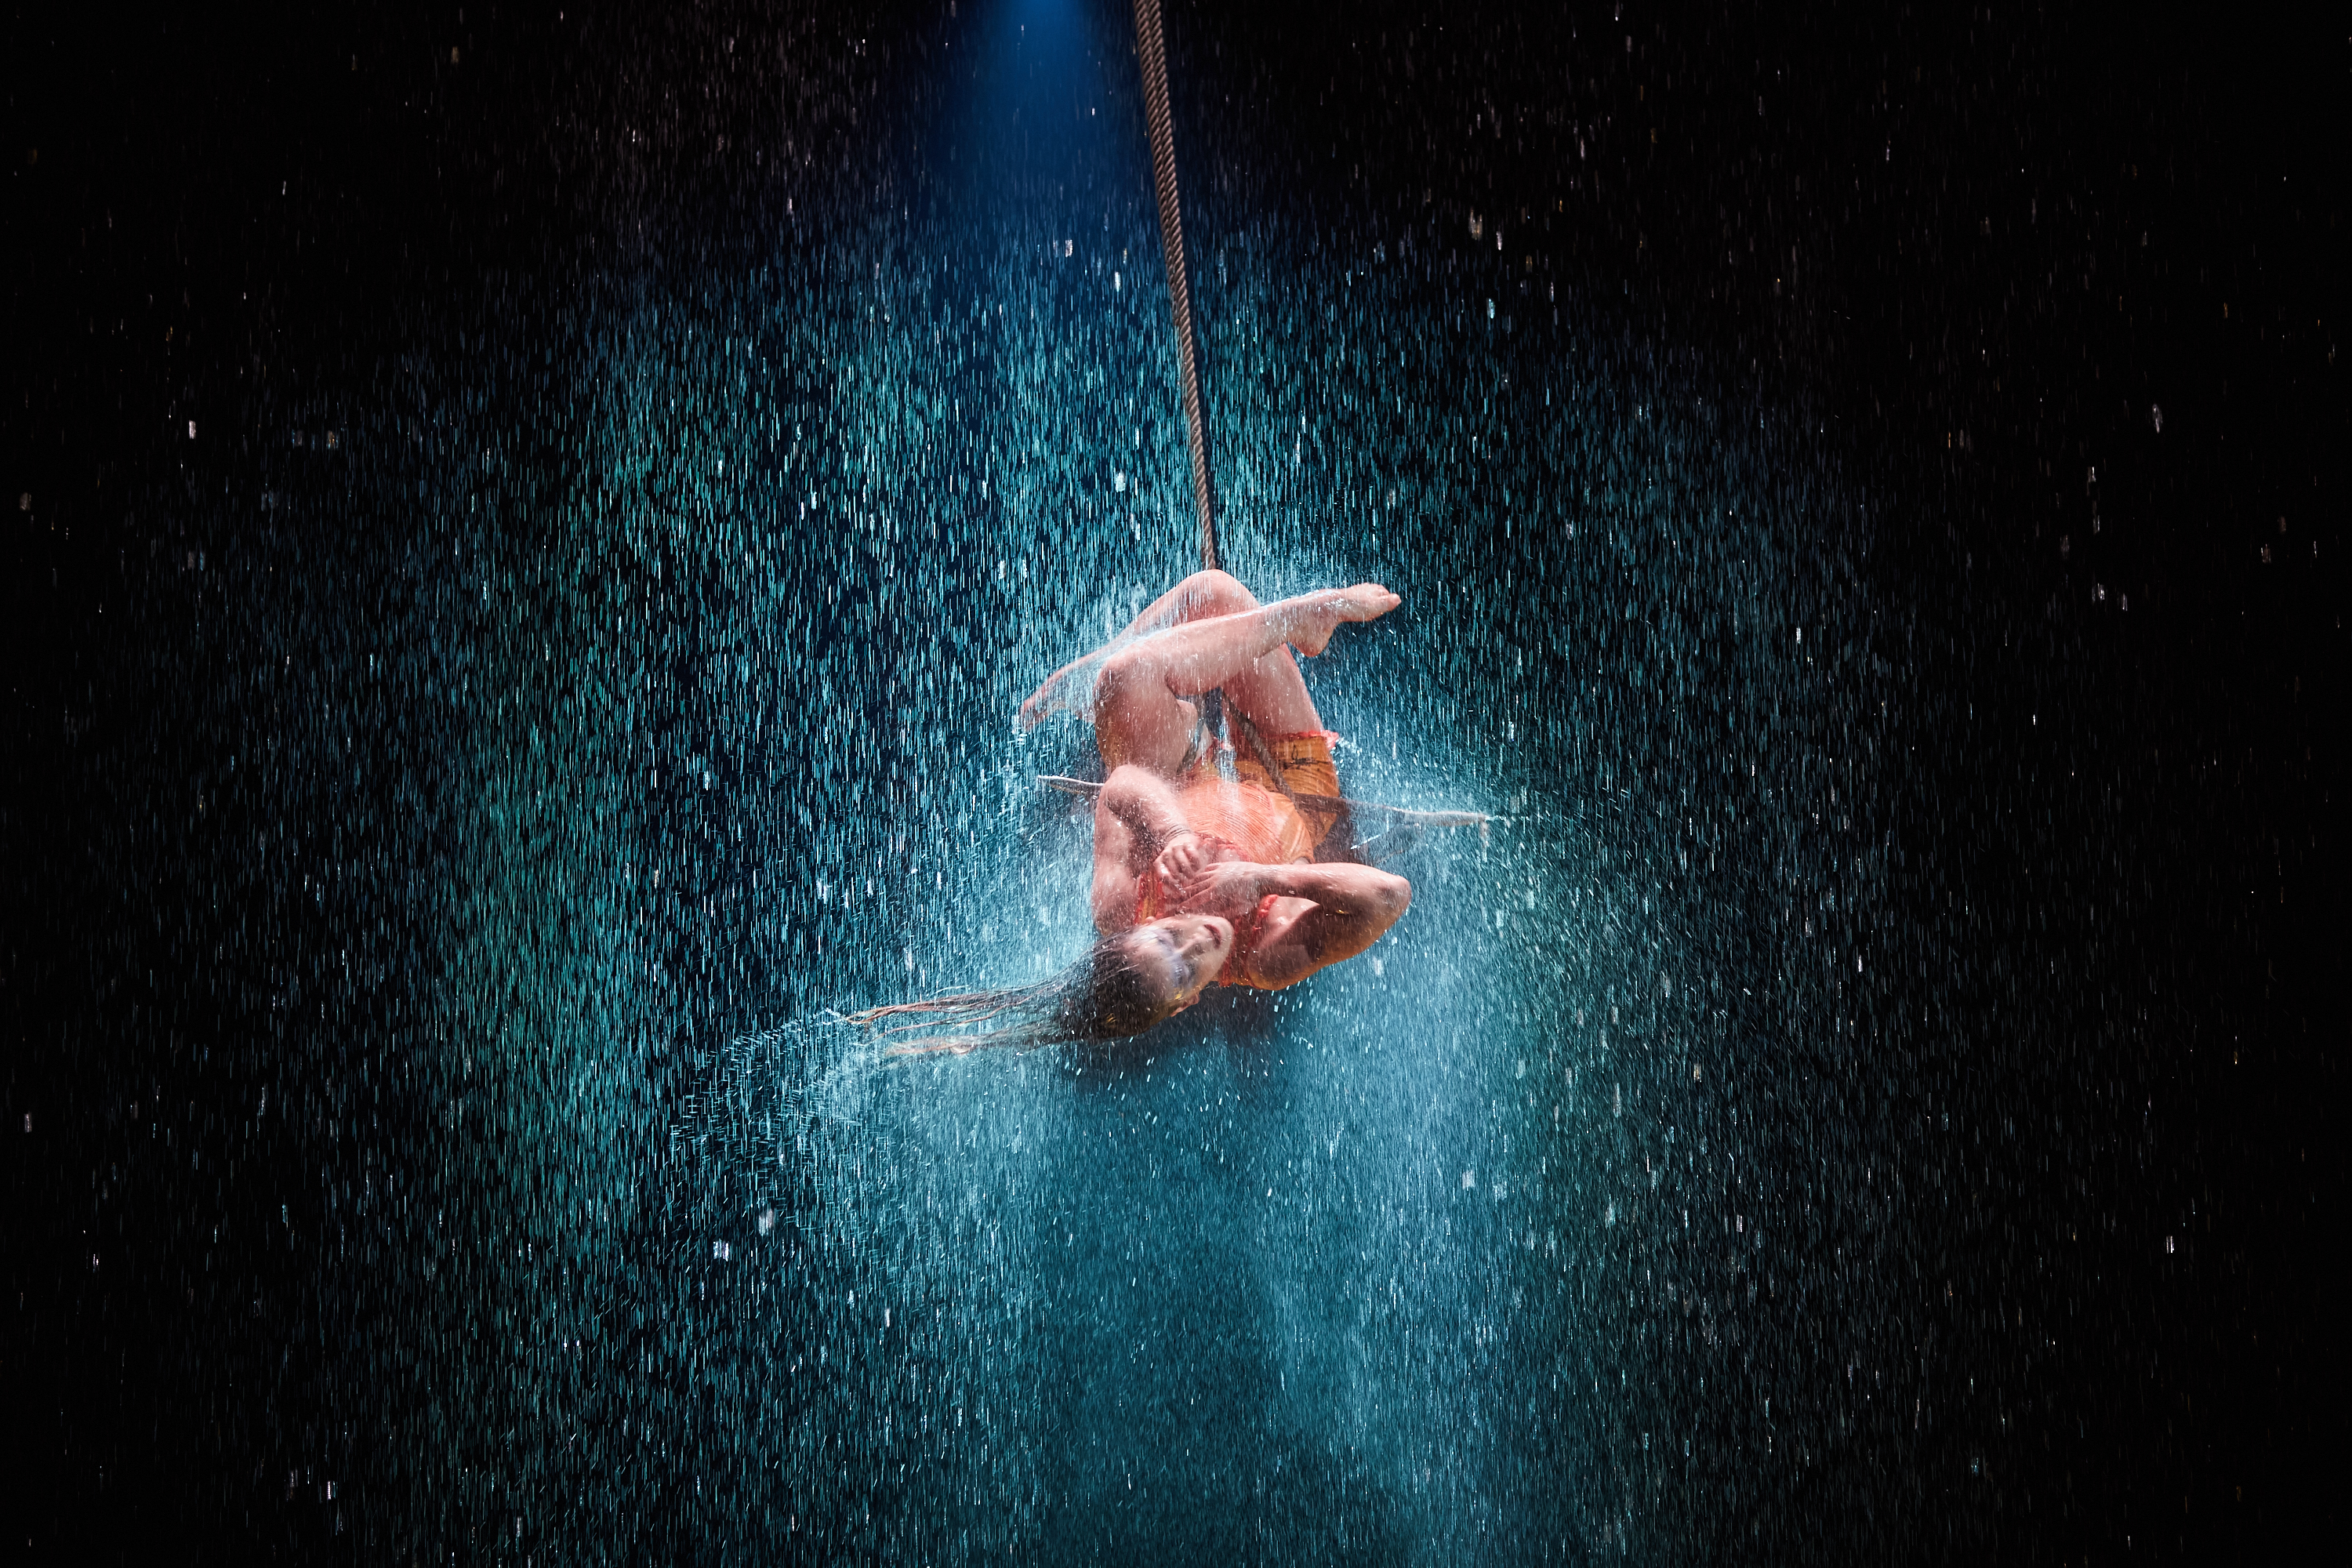 A figure poses upside down, hanging from a rope, with legs crossed, in a torrential downpour.